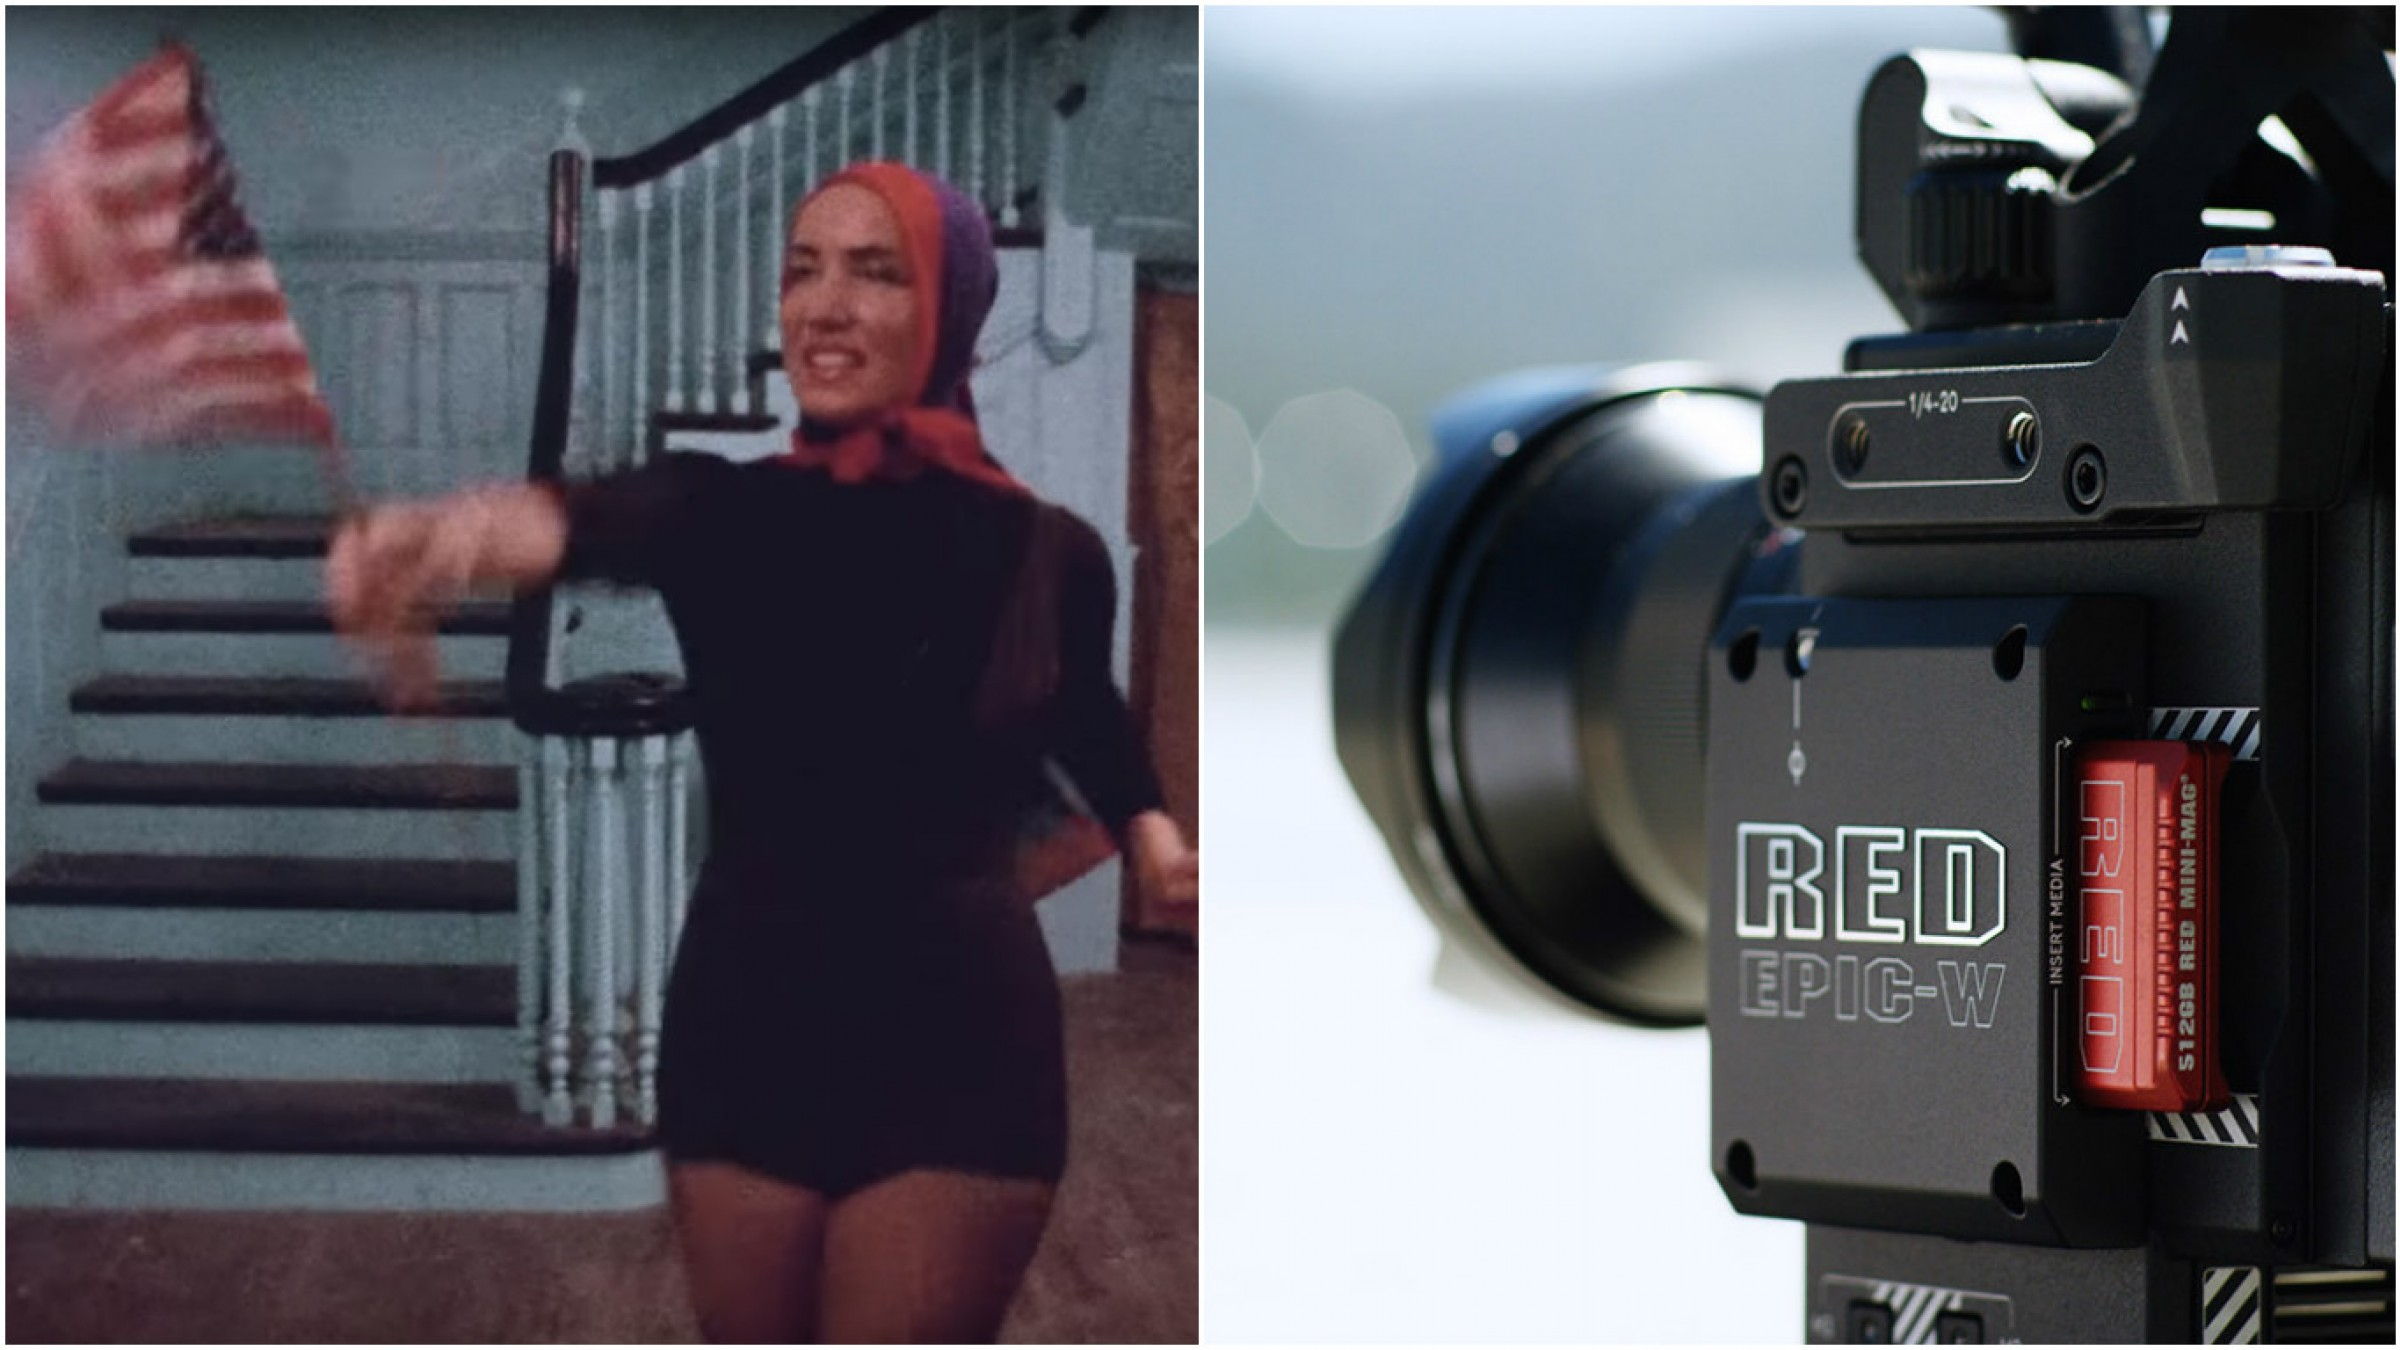 RED Evolves with New 8K Brains & How to Shoot Digital to Feel Like Film [PODCAST]